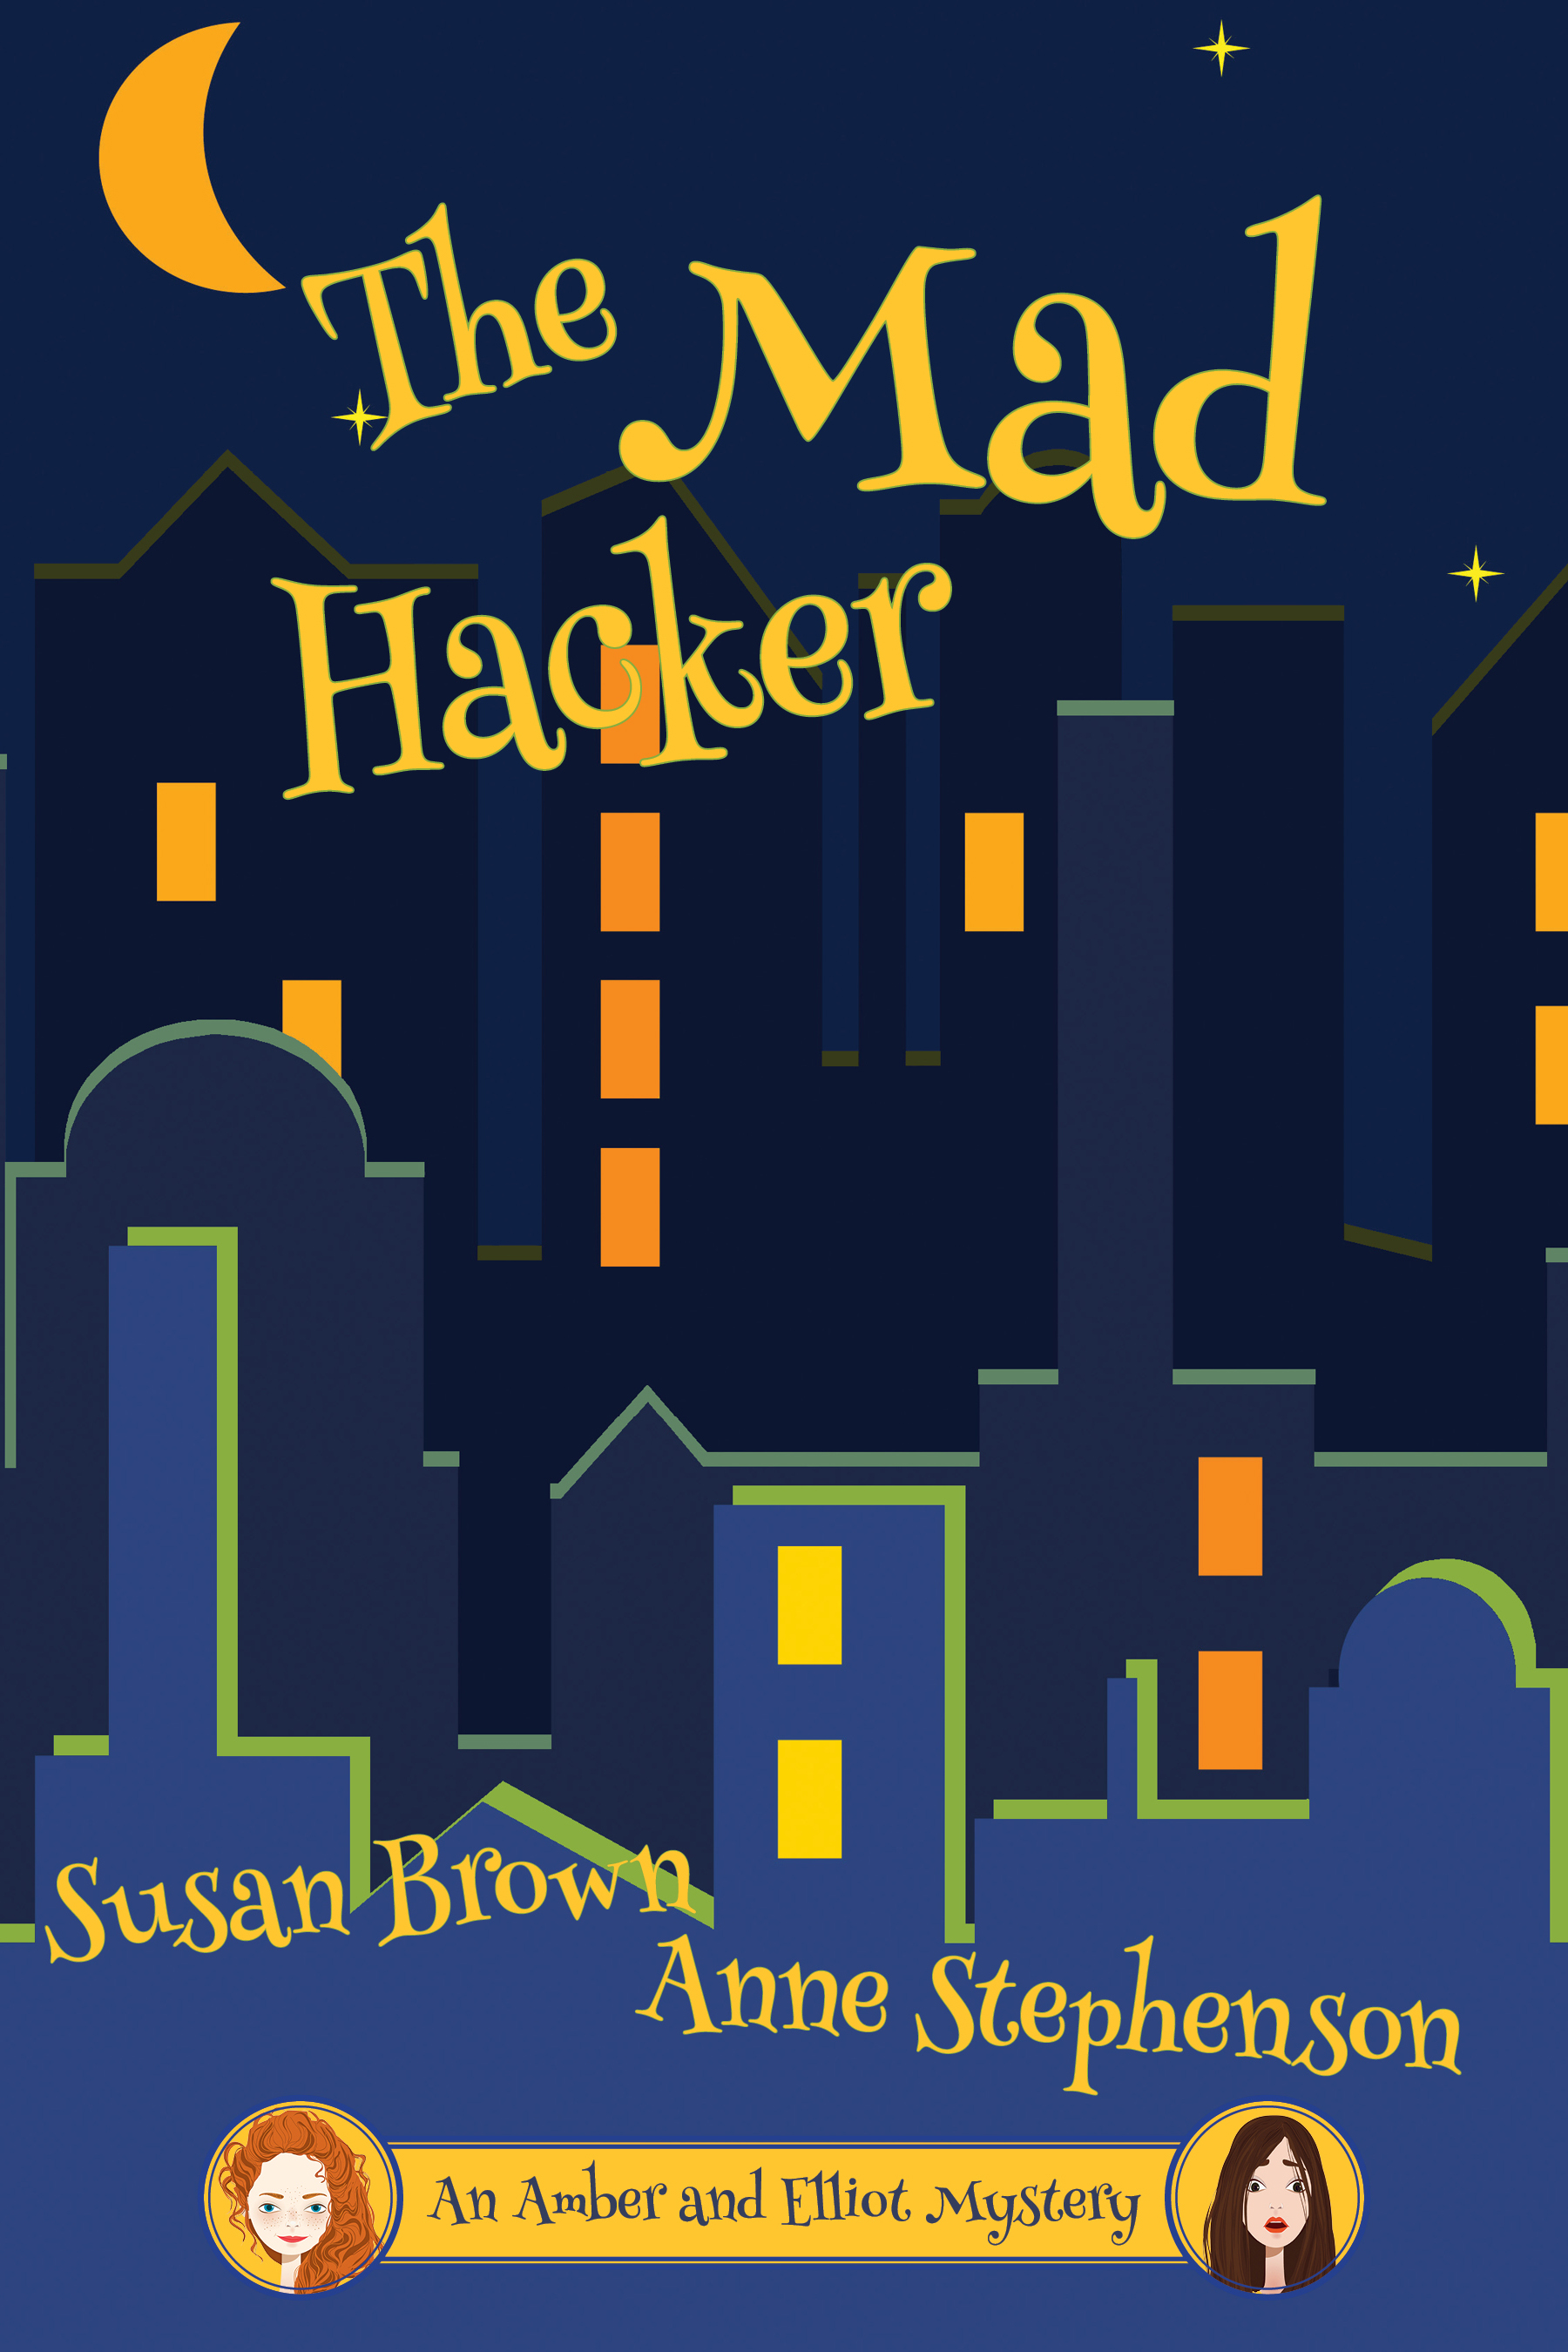 The Mad Hacker  Available on  Kobo  and  Kindle . Available soon in paperback.  Cover artwork and interior layout provided by Cover&Layout.